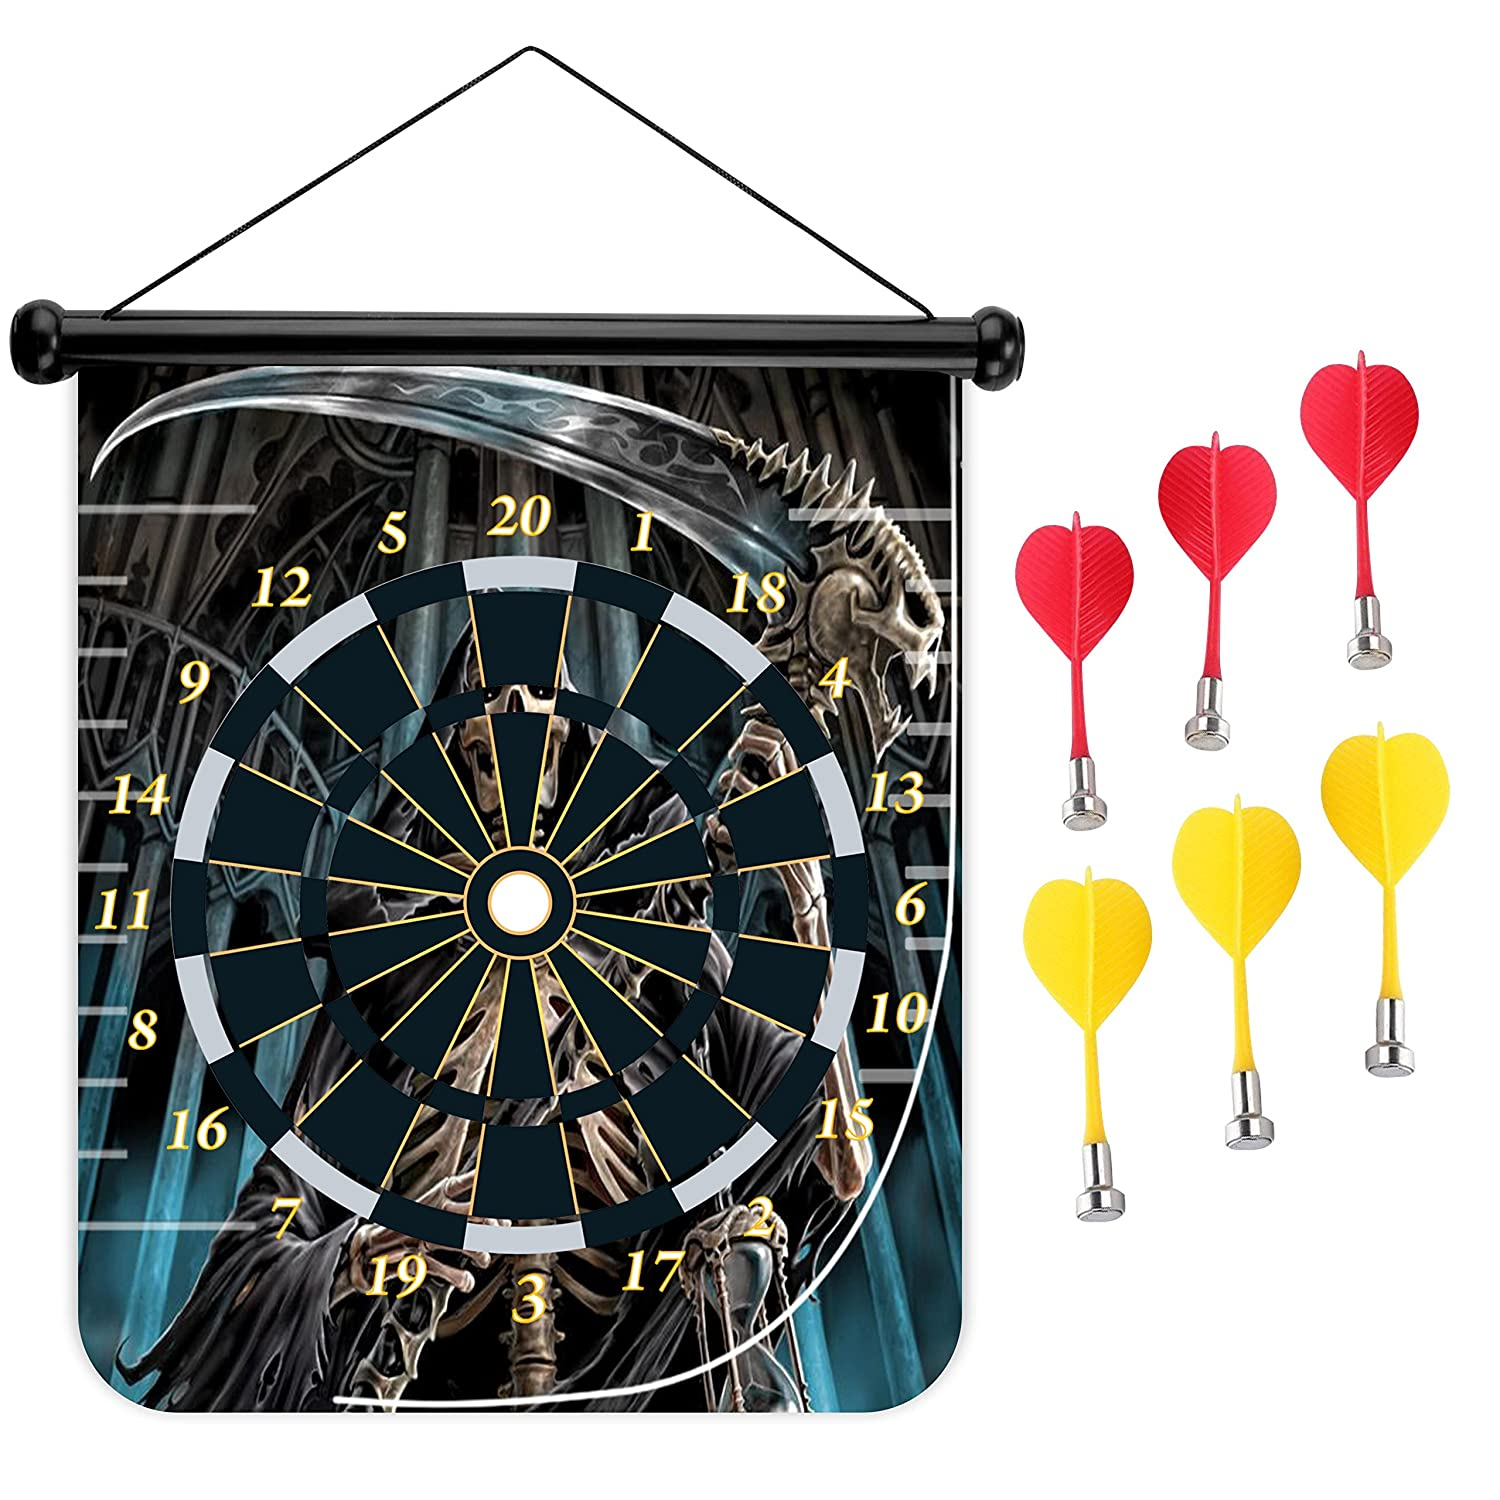 15インチMagnetic Dart Board Double Sided Hanging Dart Board Set and Bullseyeゲーム。Death B078Y2WRSJ